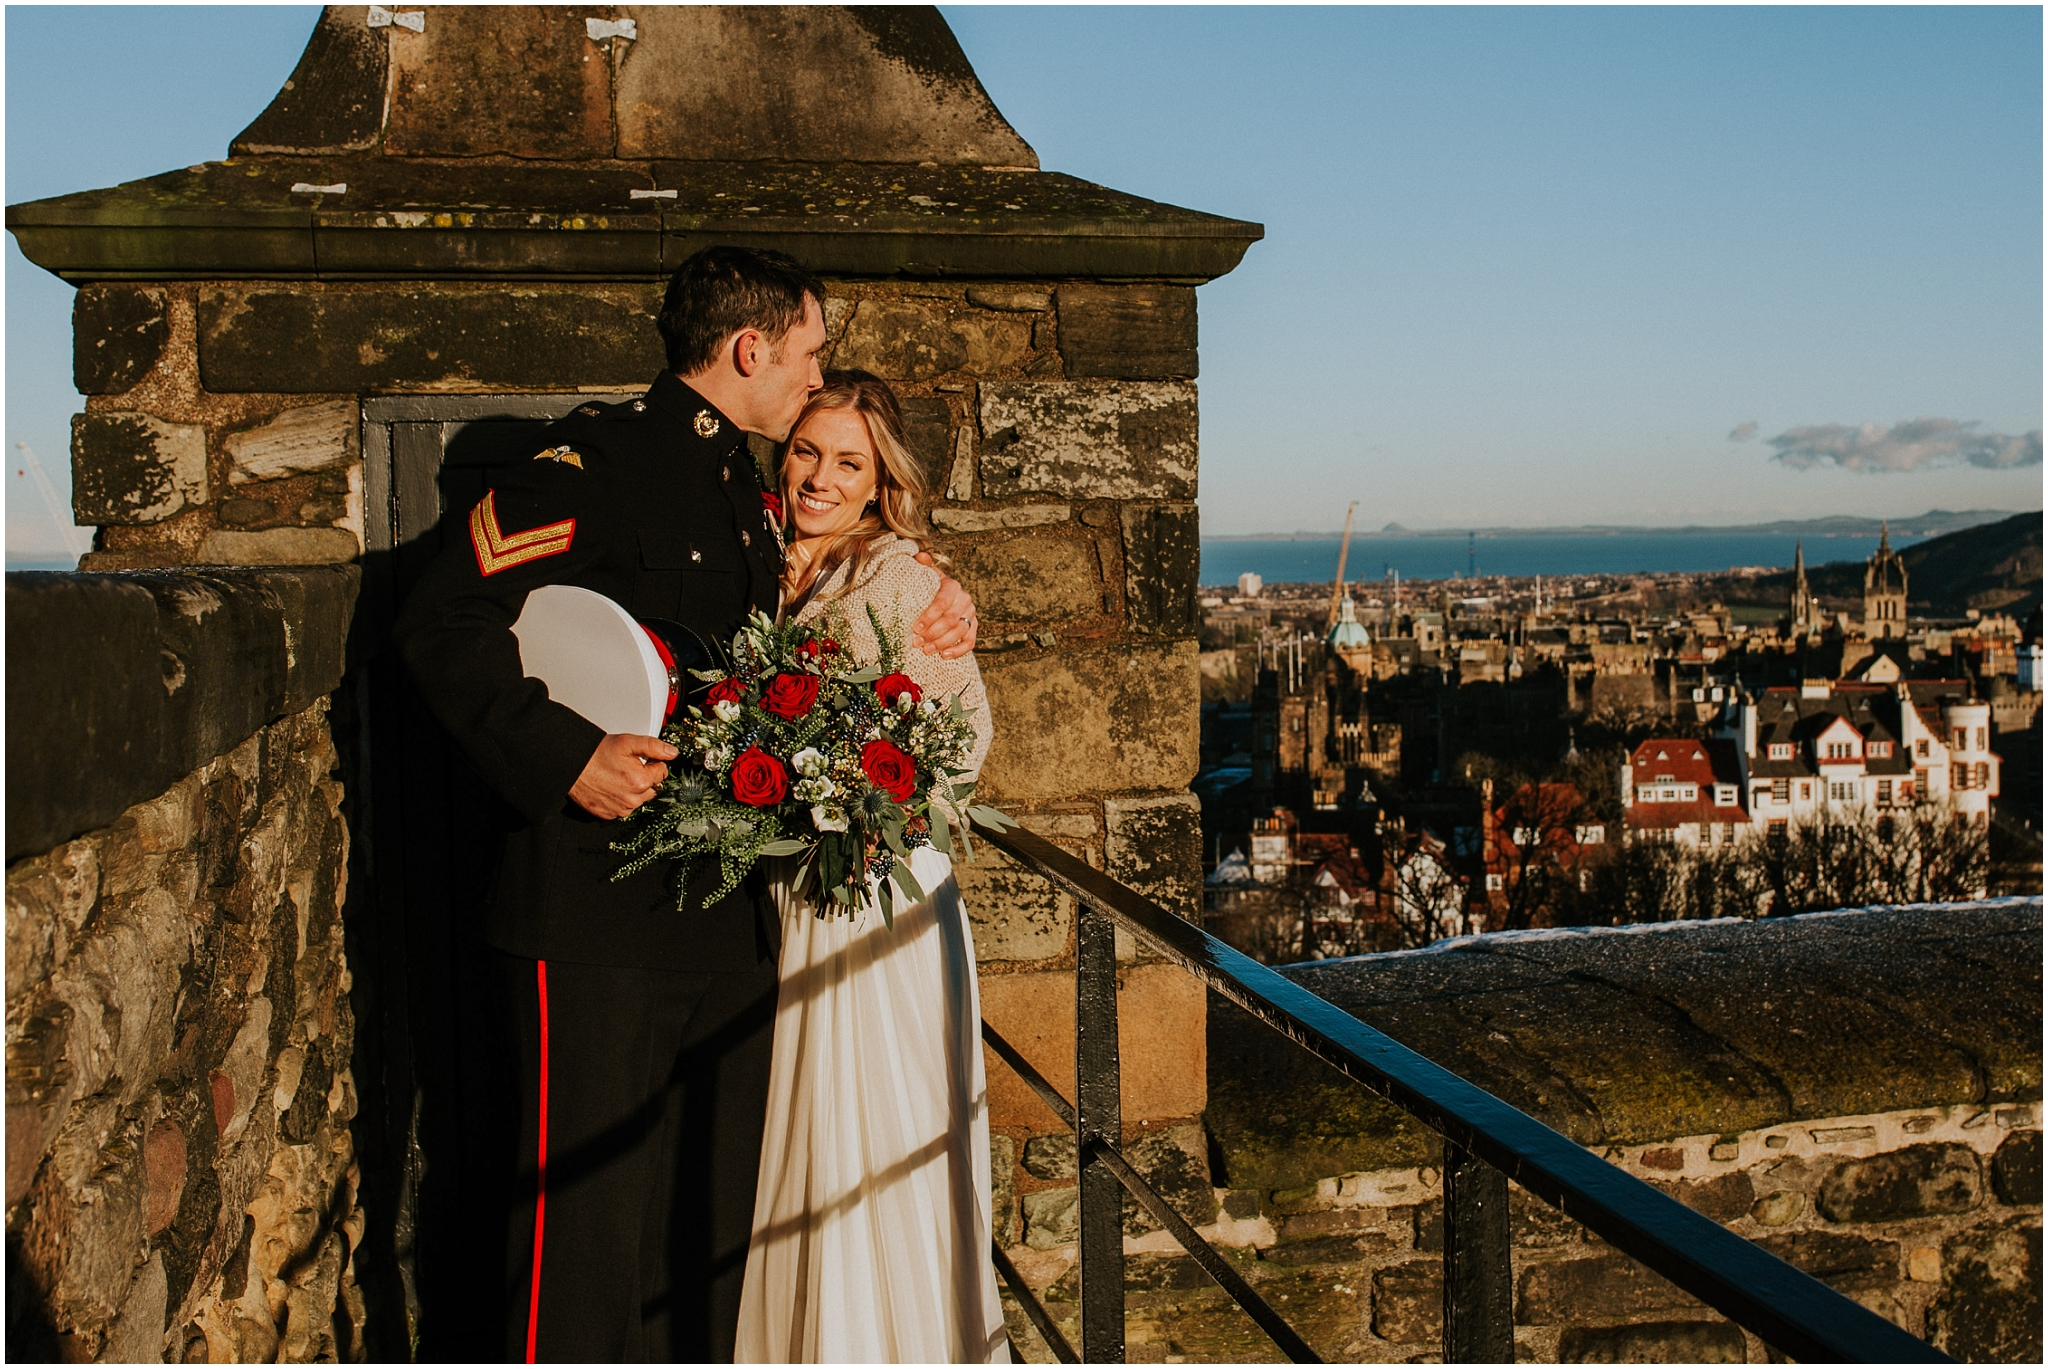 castle,edinburgh,edinburghweddingphotographer,elopement,scotland,wedding,